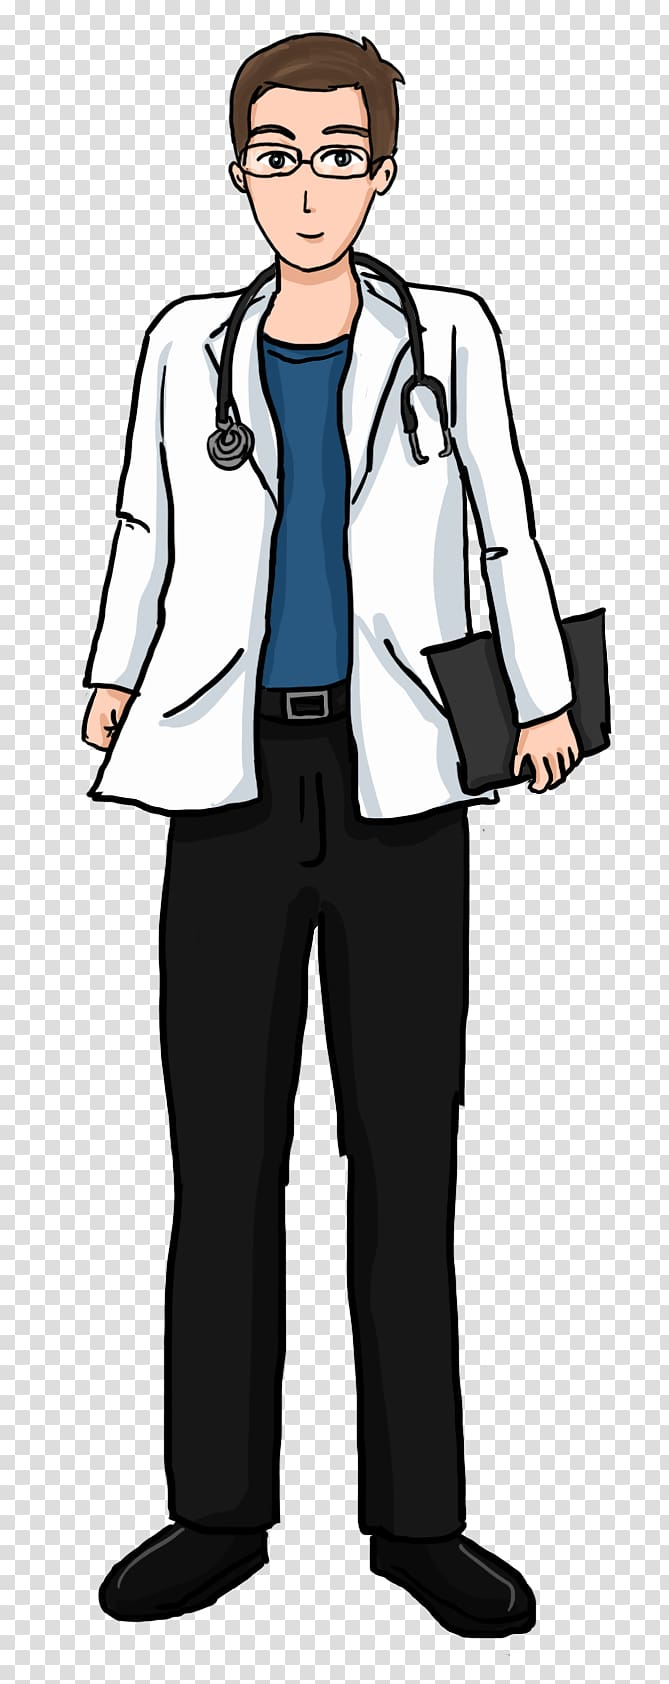 Doctor suit clipart graphic black and white library Physician Free content Medicine , Old Doctor transparent background ... graphic black and white library